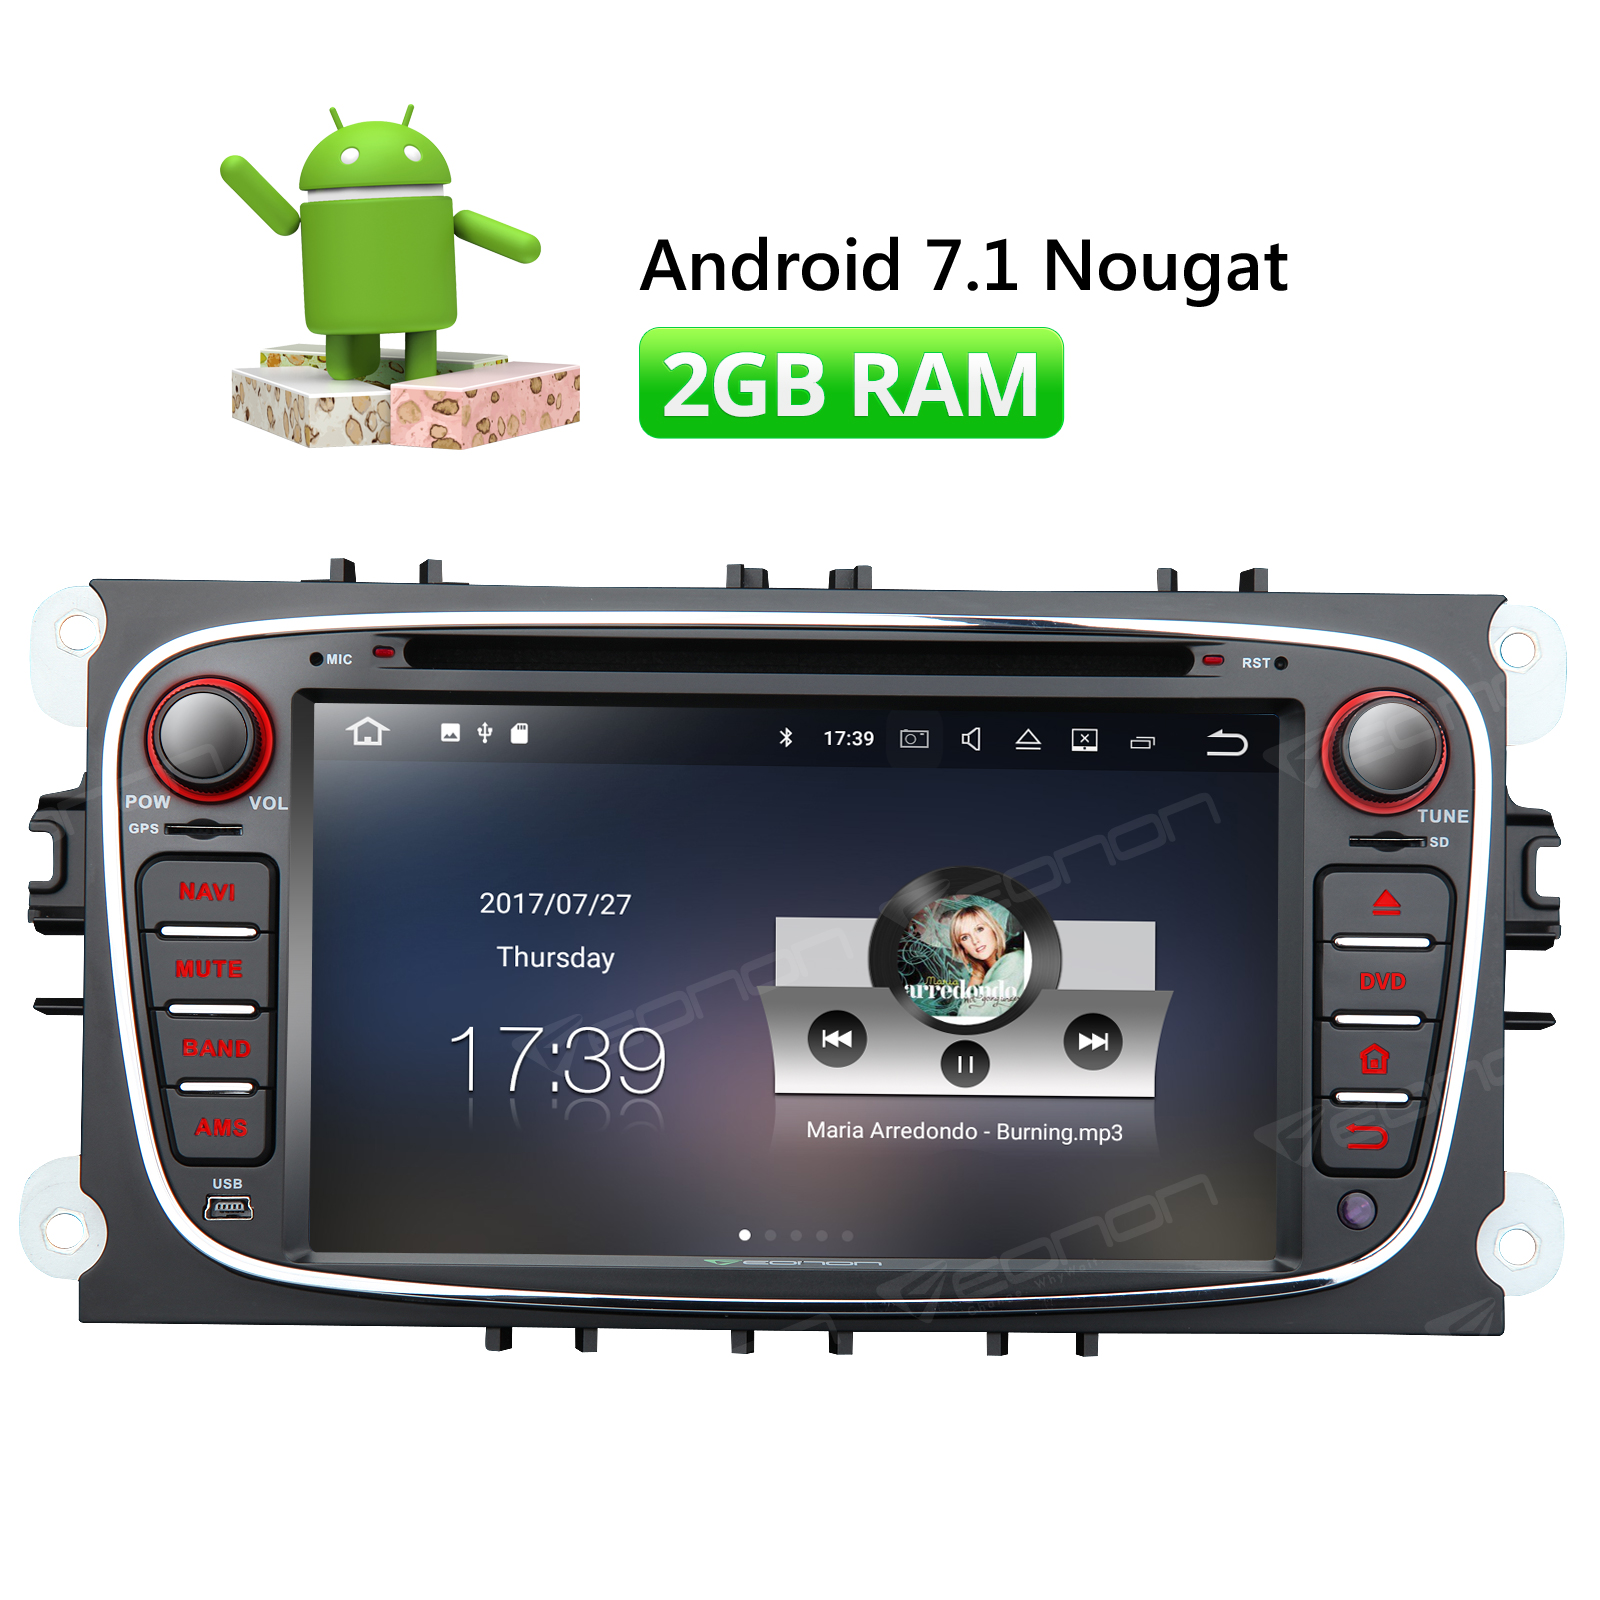 2GB RAM 7 LCD Android 7 1 Car Stereo DVD GPS Navigation Touch Screen Wifi HDMI